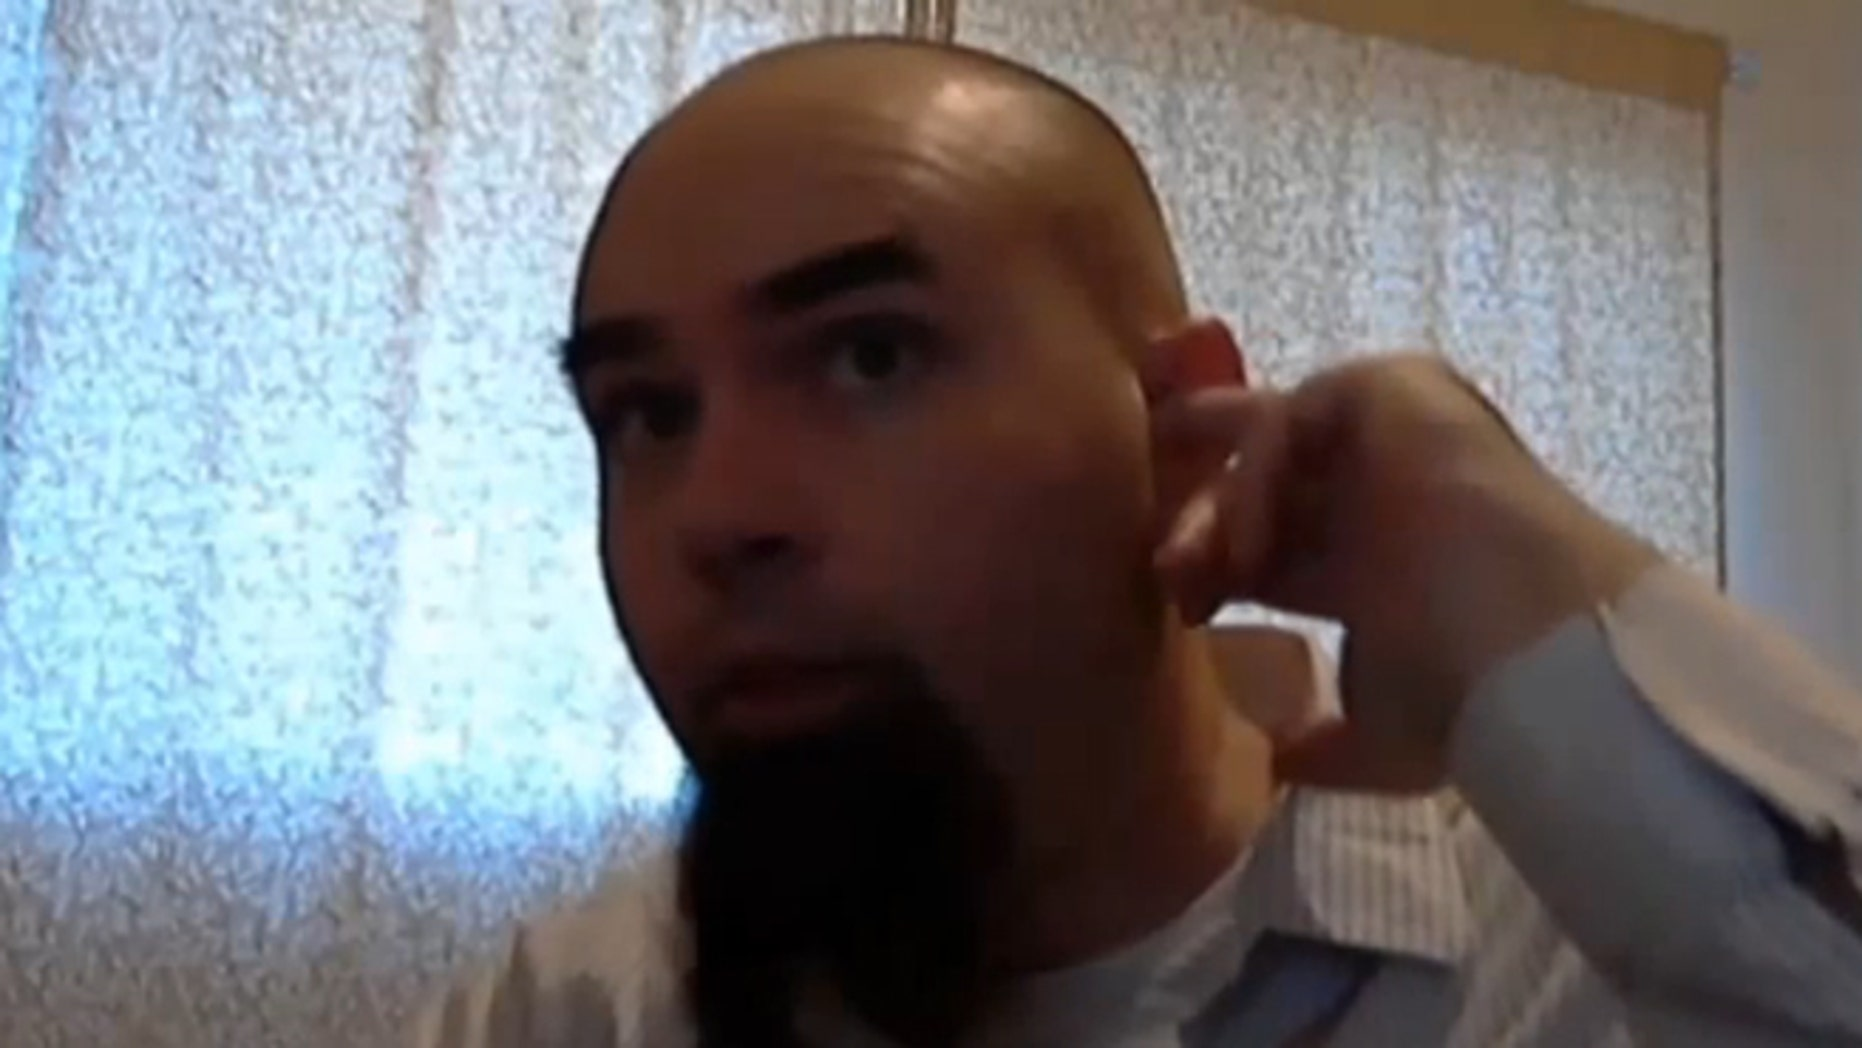 Nevada man Rich Lee has had small magnets implanted just outside of his ears. By wearing a coil around his neck and attaching it to his phone, he is able to listen to music without headphones.